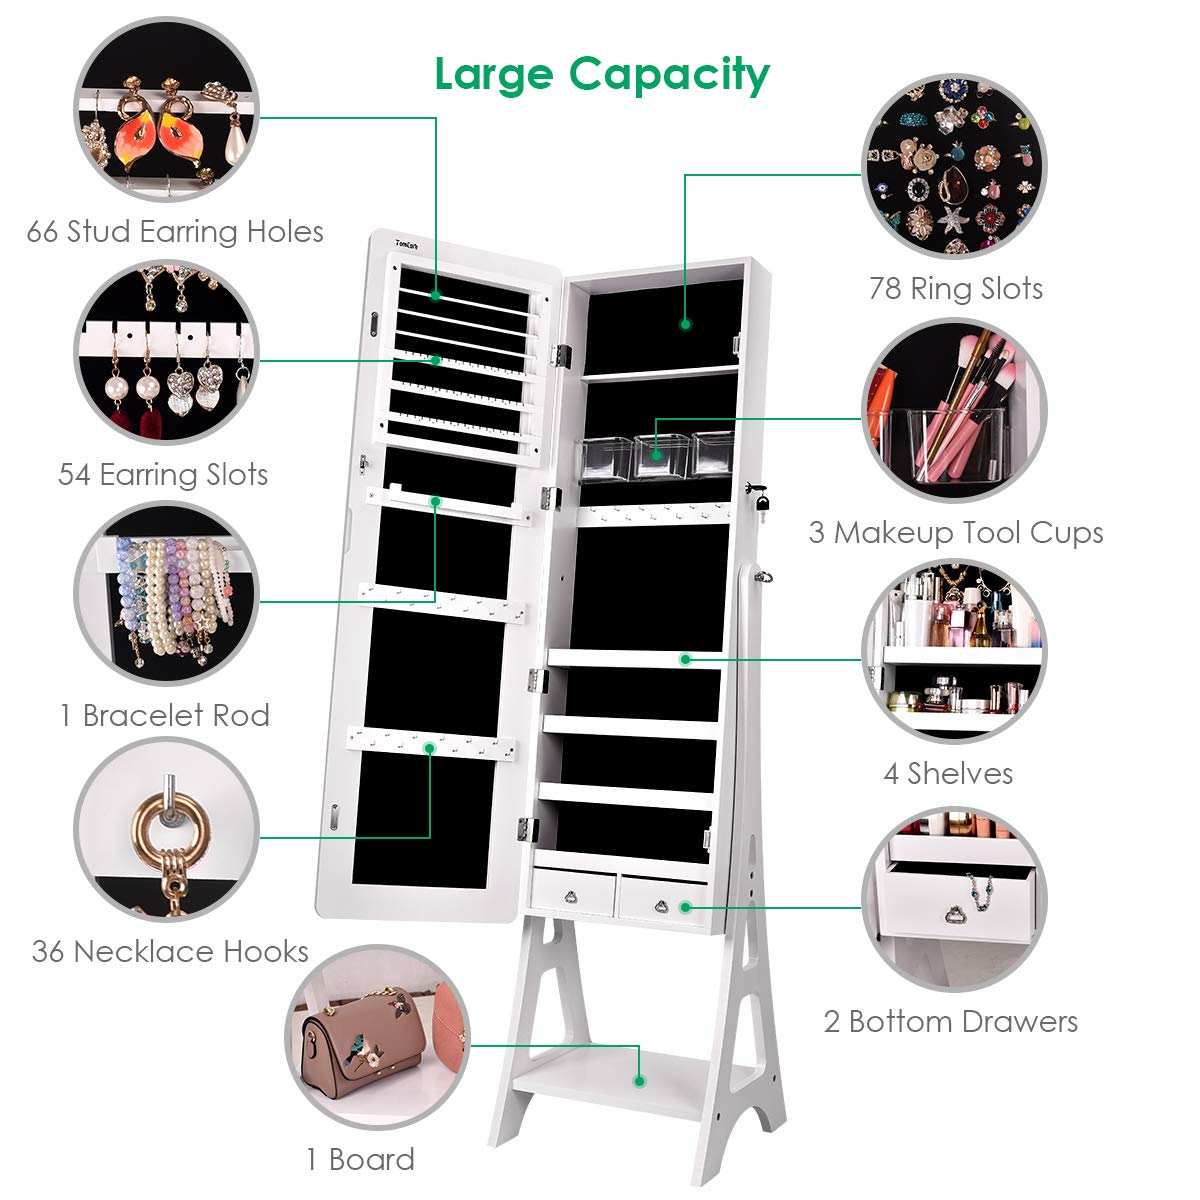 TomCare Jewelry Organizer Jewelry Cabinet Free Standing Jewelry Armoire Lockable Tilt Angle Adjustable Jewelry Box withFull Length Mirror & 2 Drawers Earring OrganizerJewelry Storage Holder, White by TomCare (Image #4)